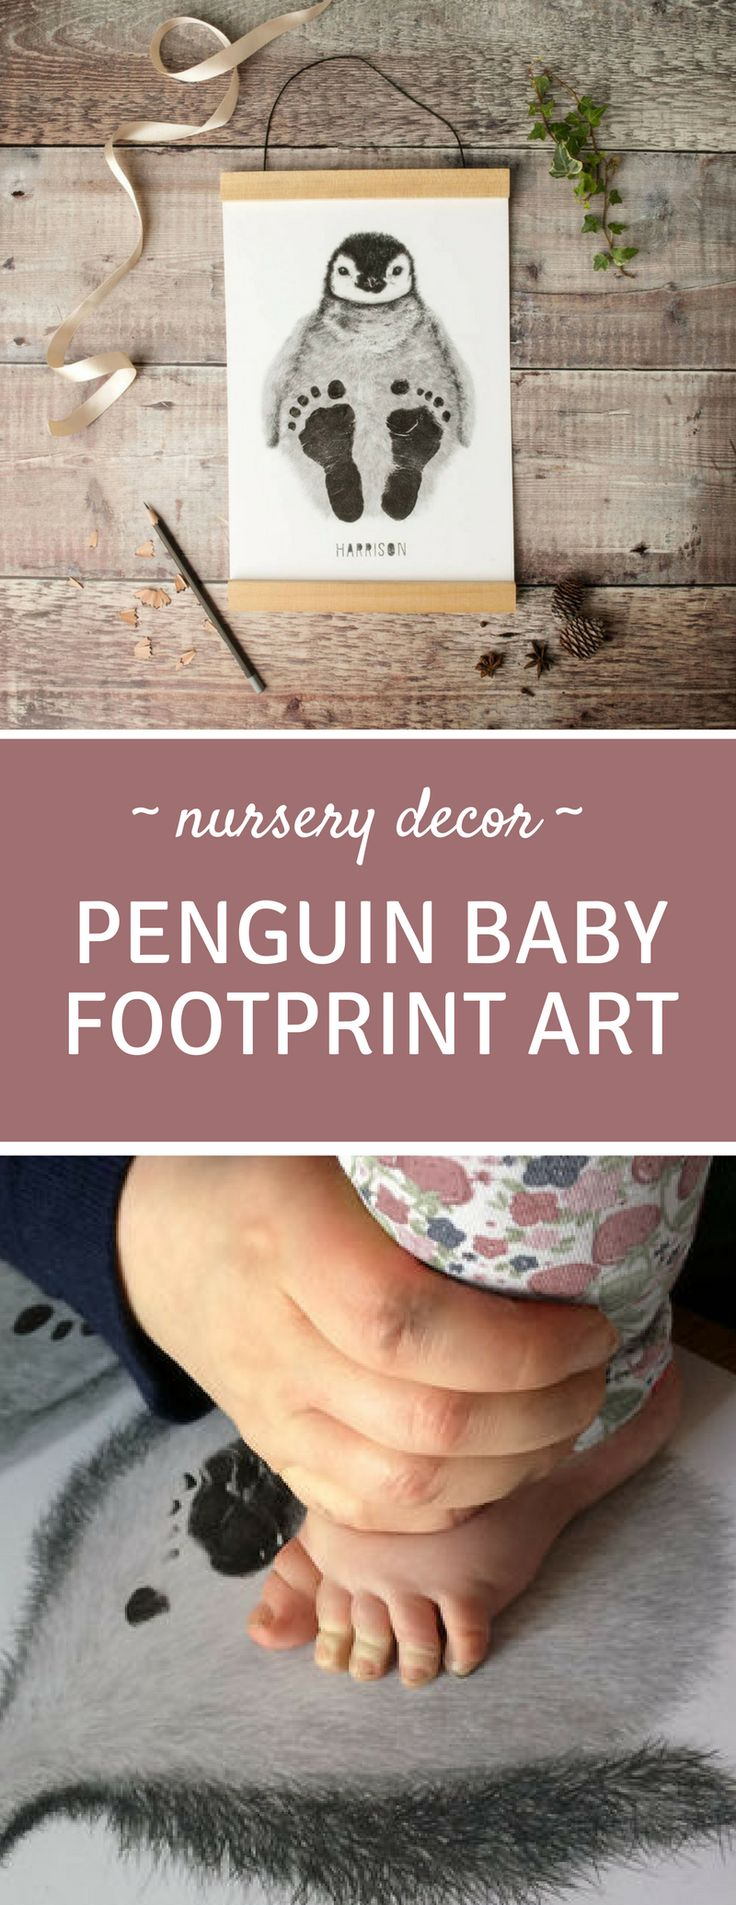 Baby Footprint Art - Penguin Kit - How adorable is this penguin complete with baby's footprints! This would look fabulous in the nursery and make a really thoughtful baby shower gift! #ad #nurserydecor #babyshowergifts